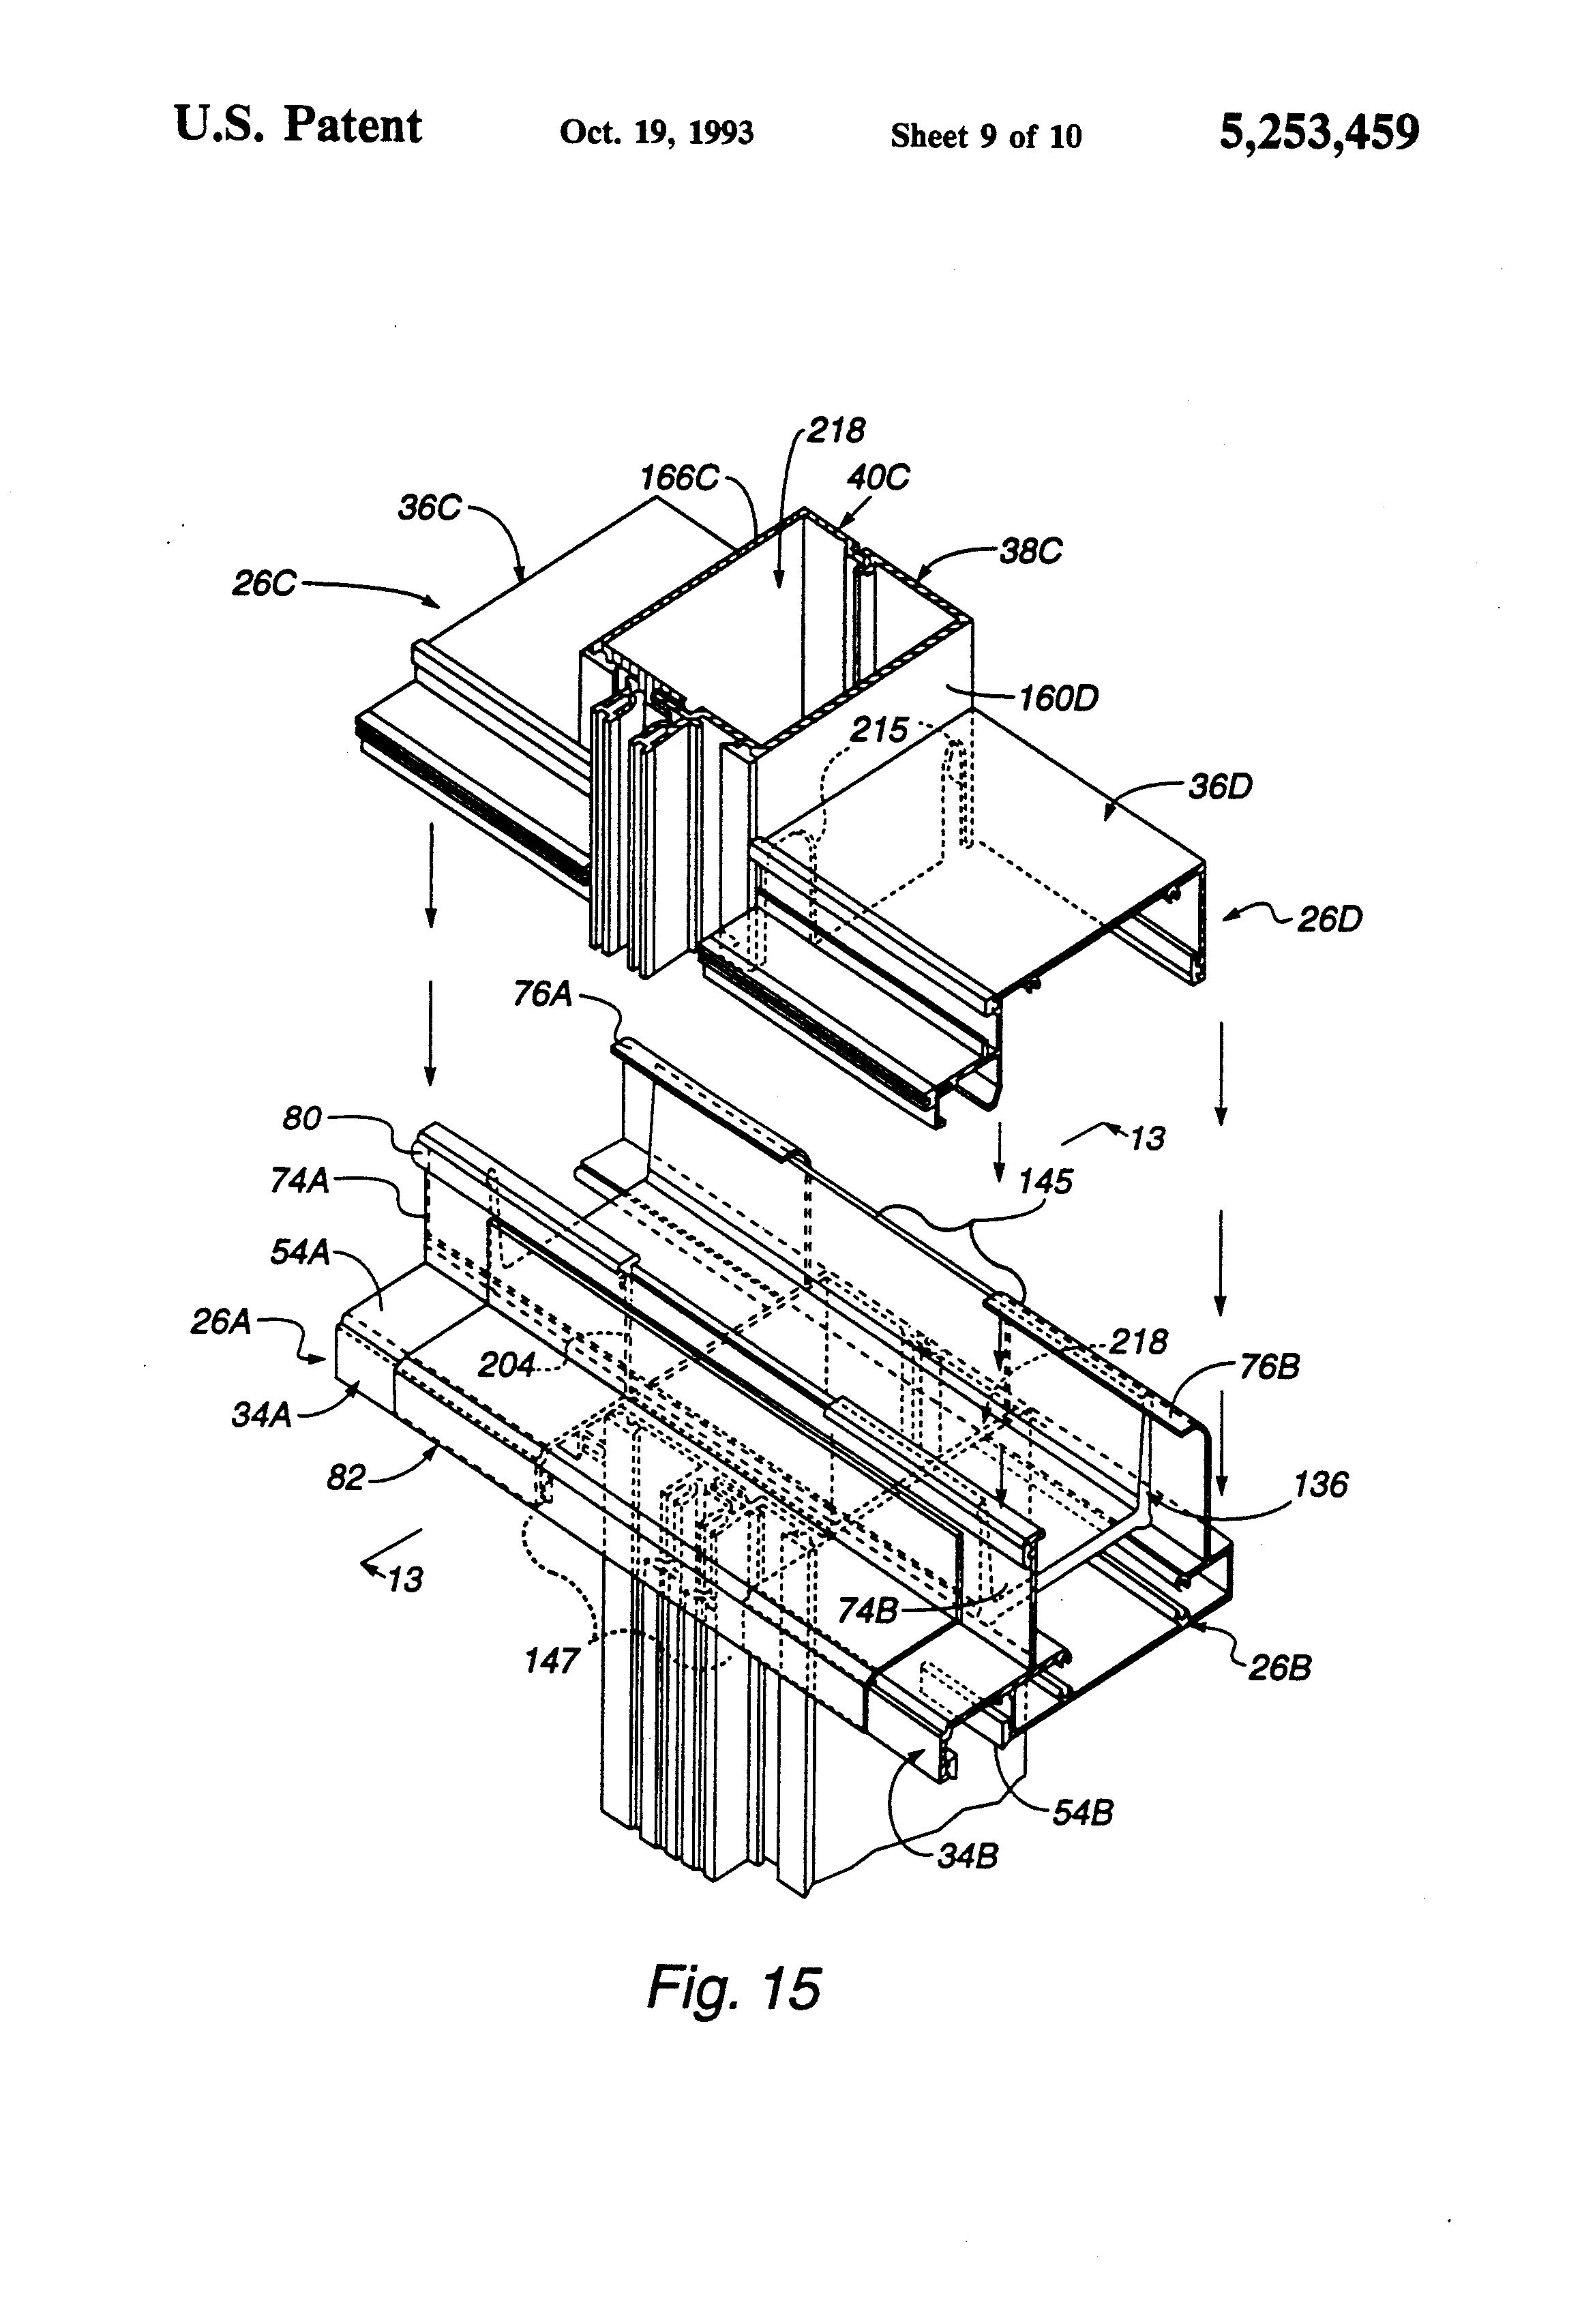 Curtain Wall Assembly : Patent us curtain wall structure google patents